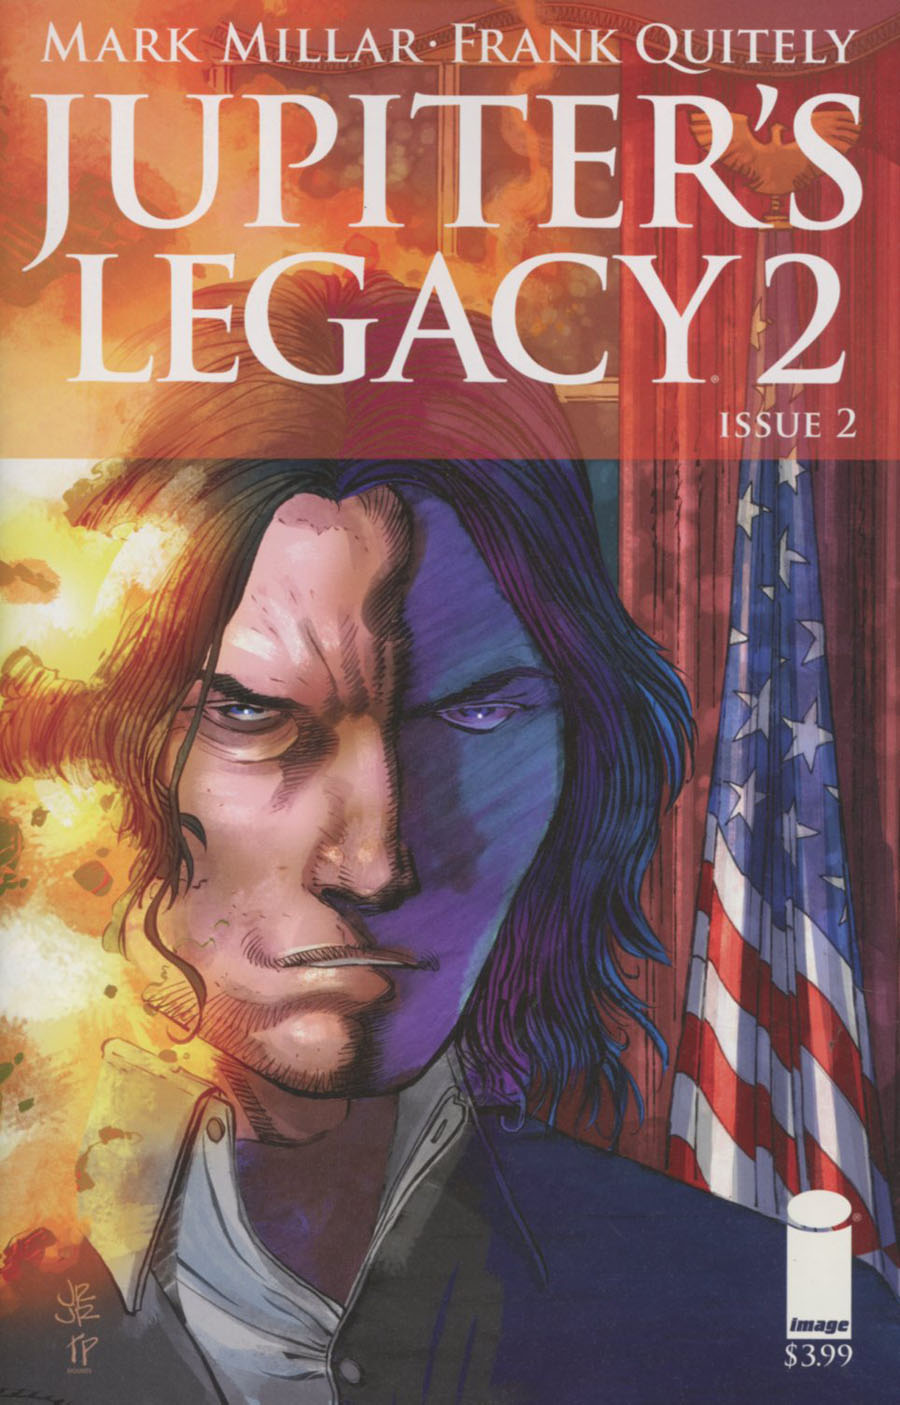 Jupiters Legacy Vol 2 #2 Cover B Variant John Romita Jr Cover